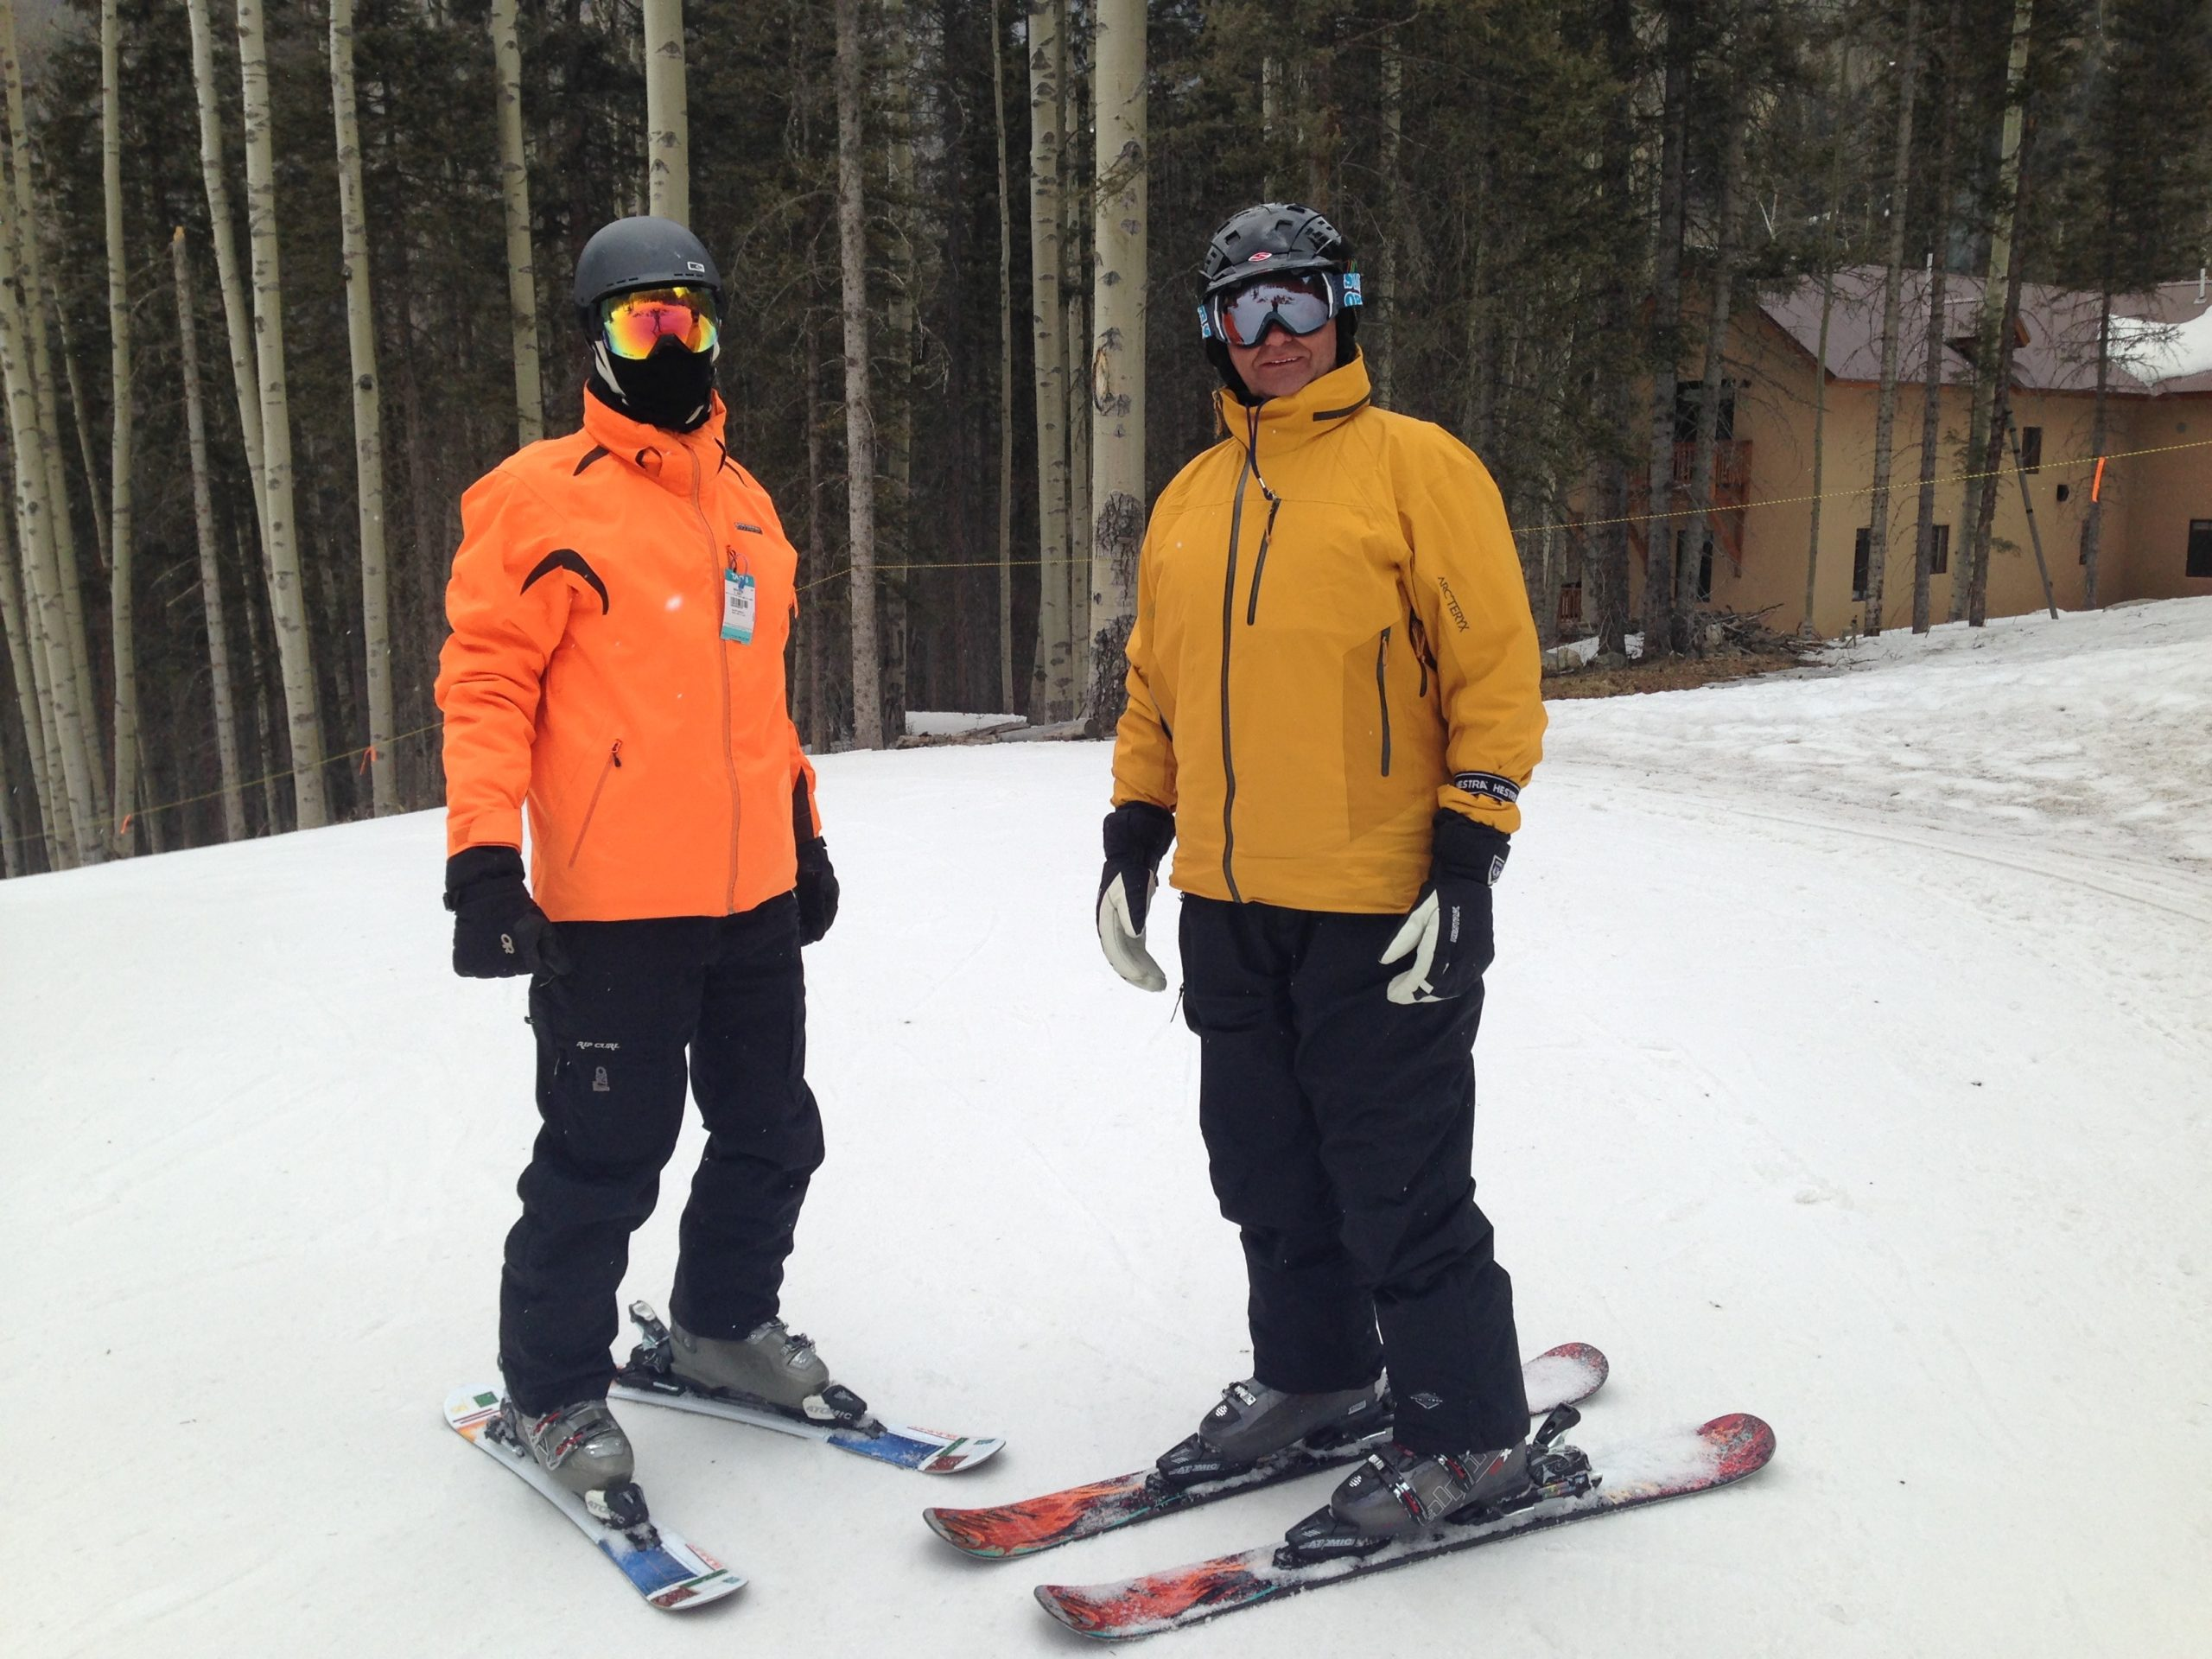 learn to ski in one day with summit skiboards